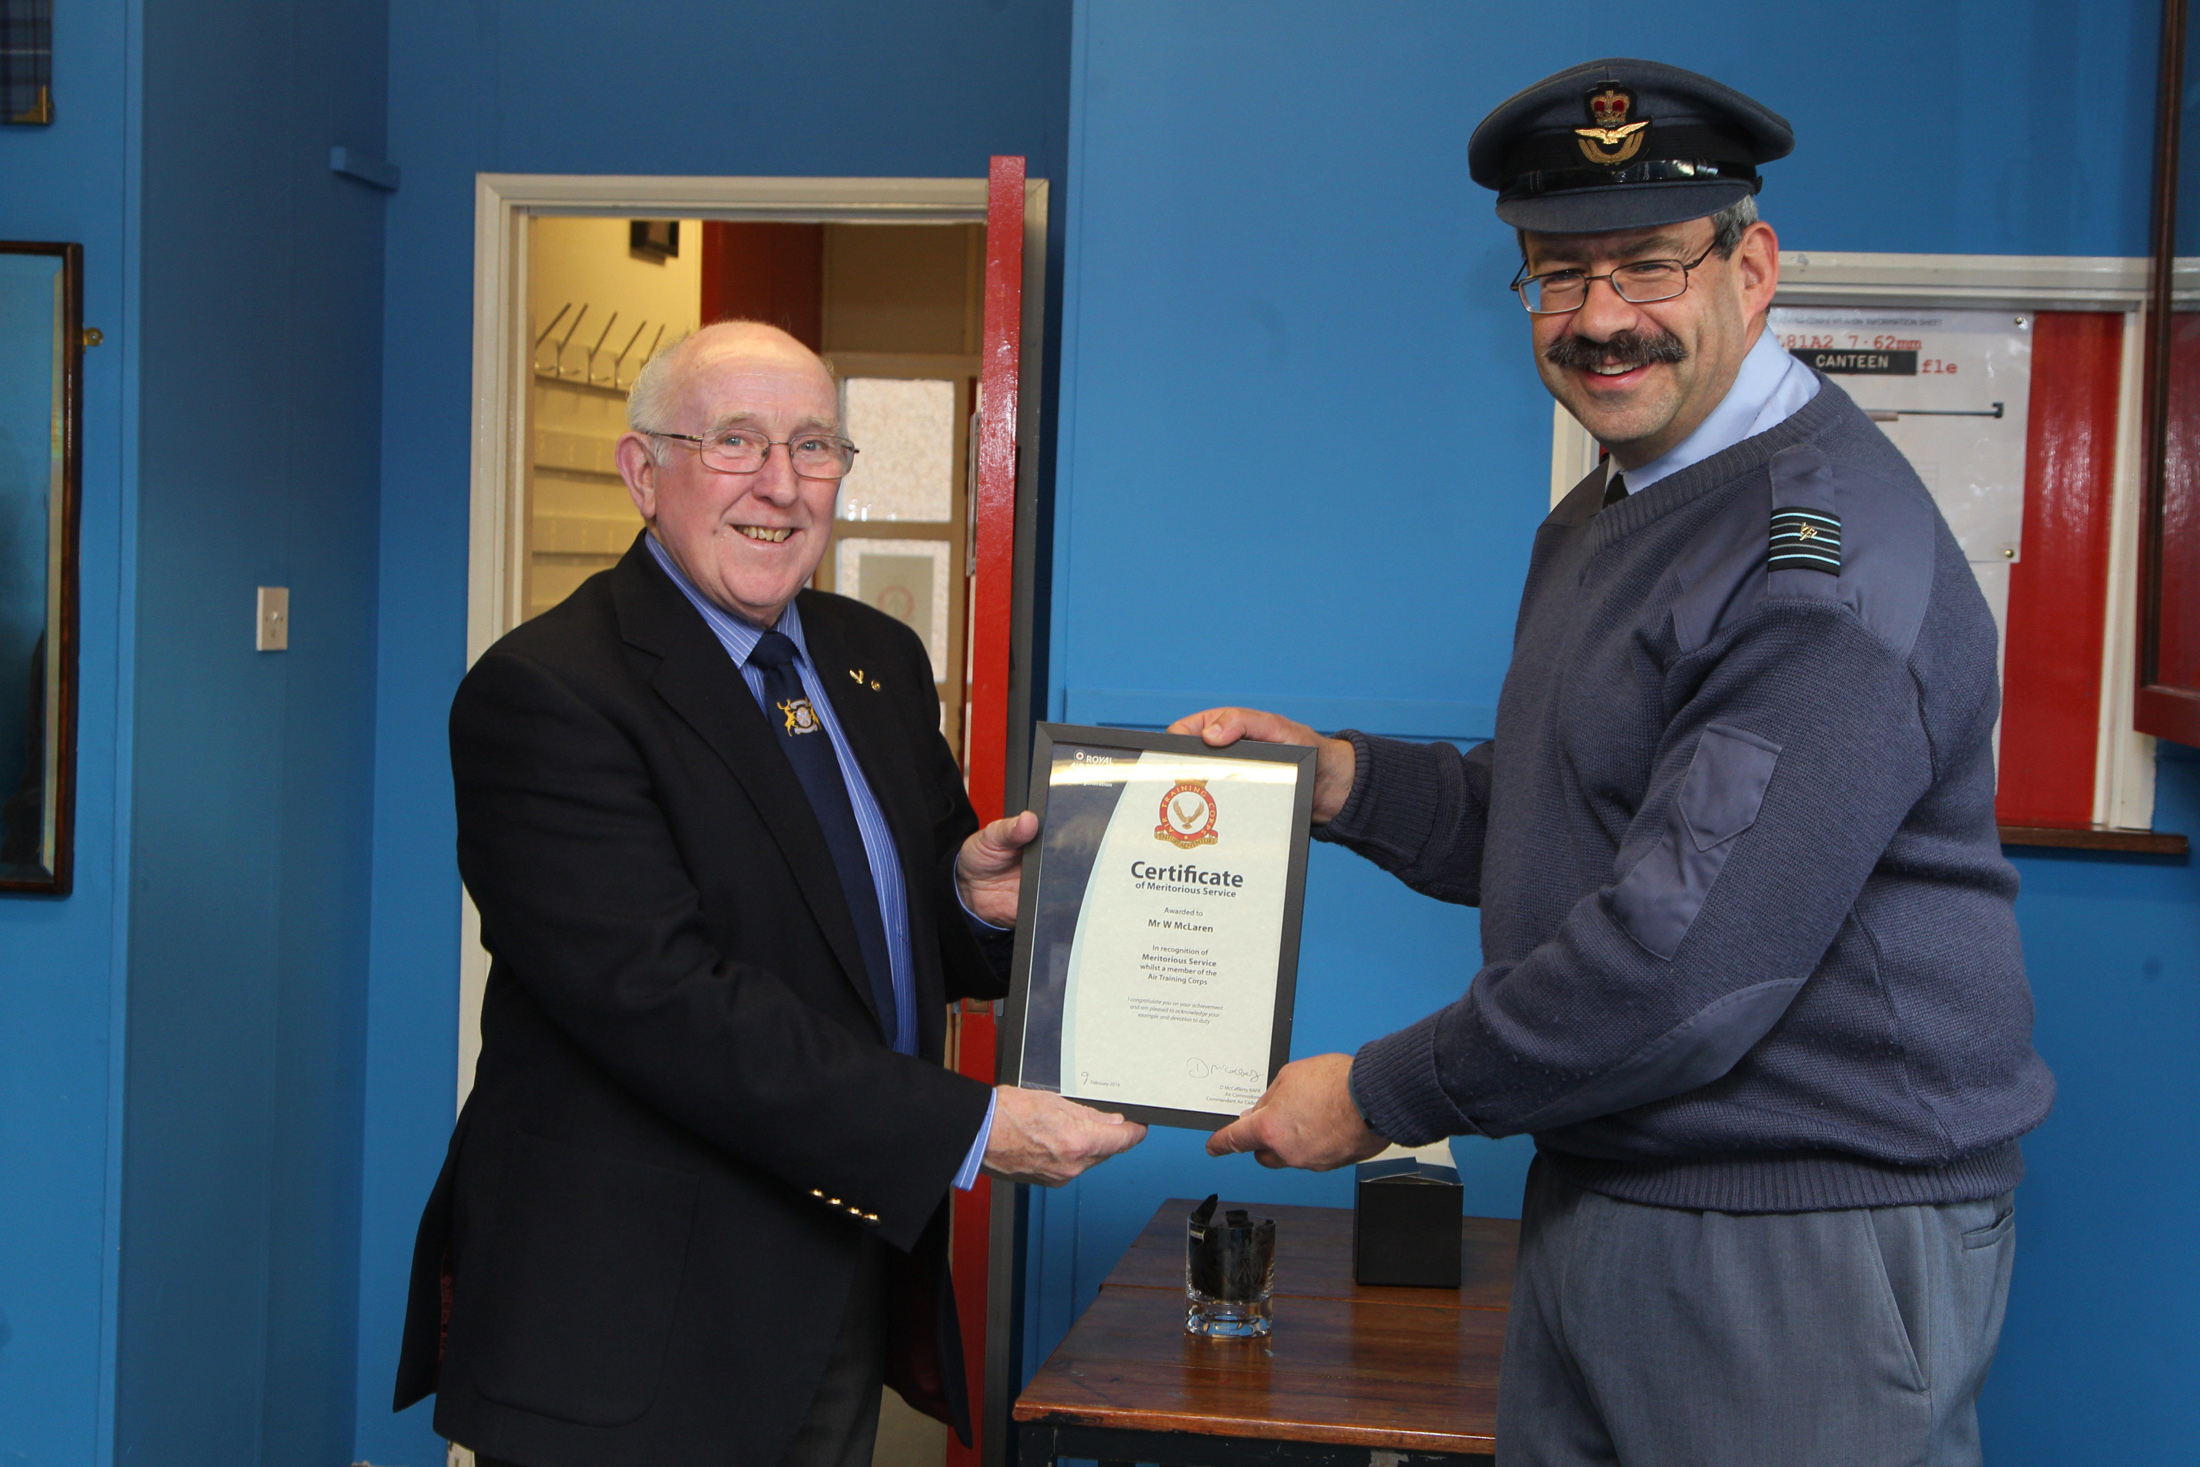 Forfar ATC present an award to Forfar baker Bill McLaren, of the famous town firm, for his stalwart support to 2231 Squadron over many years.